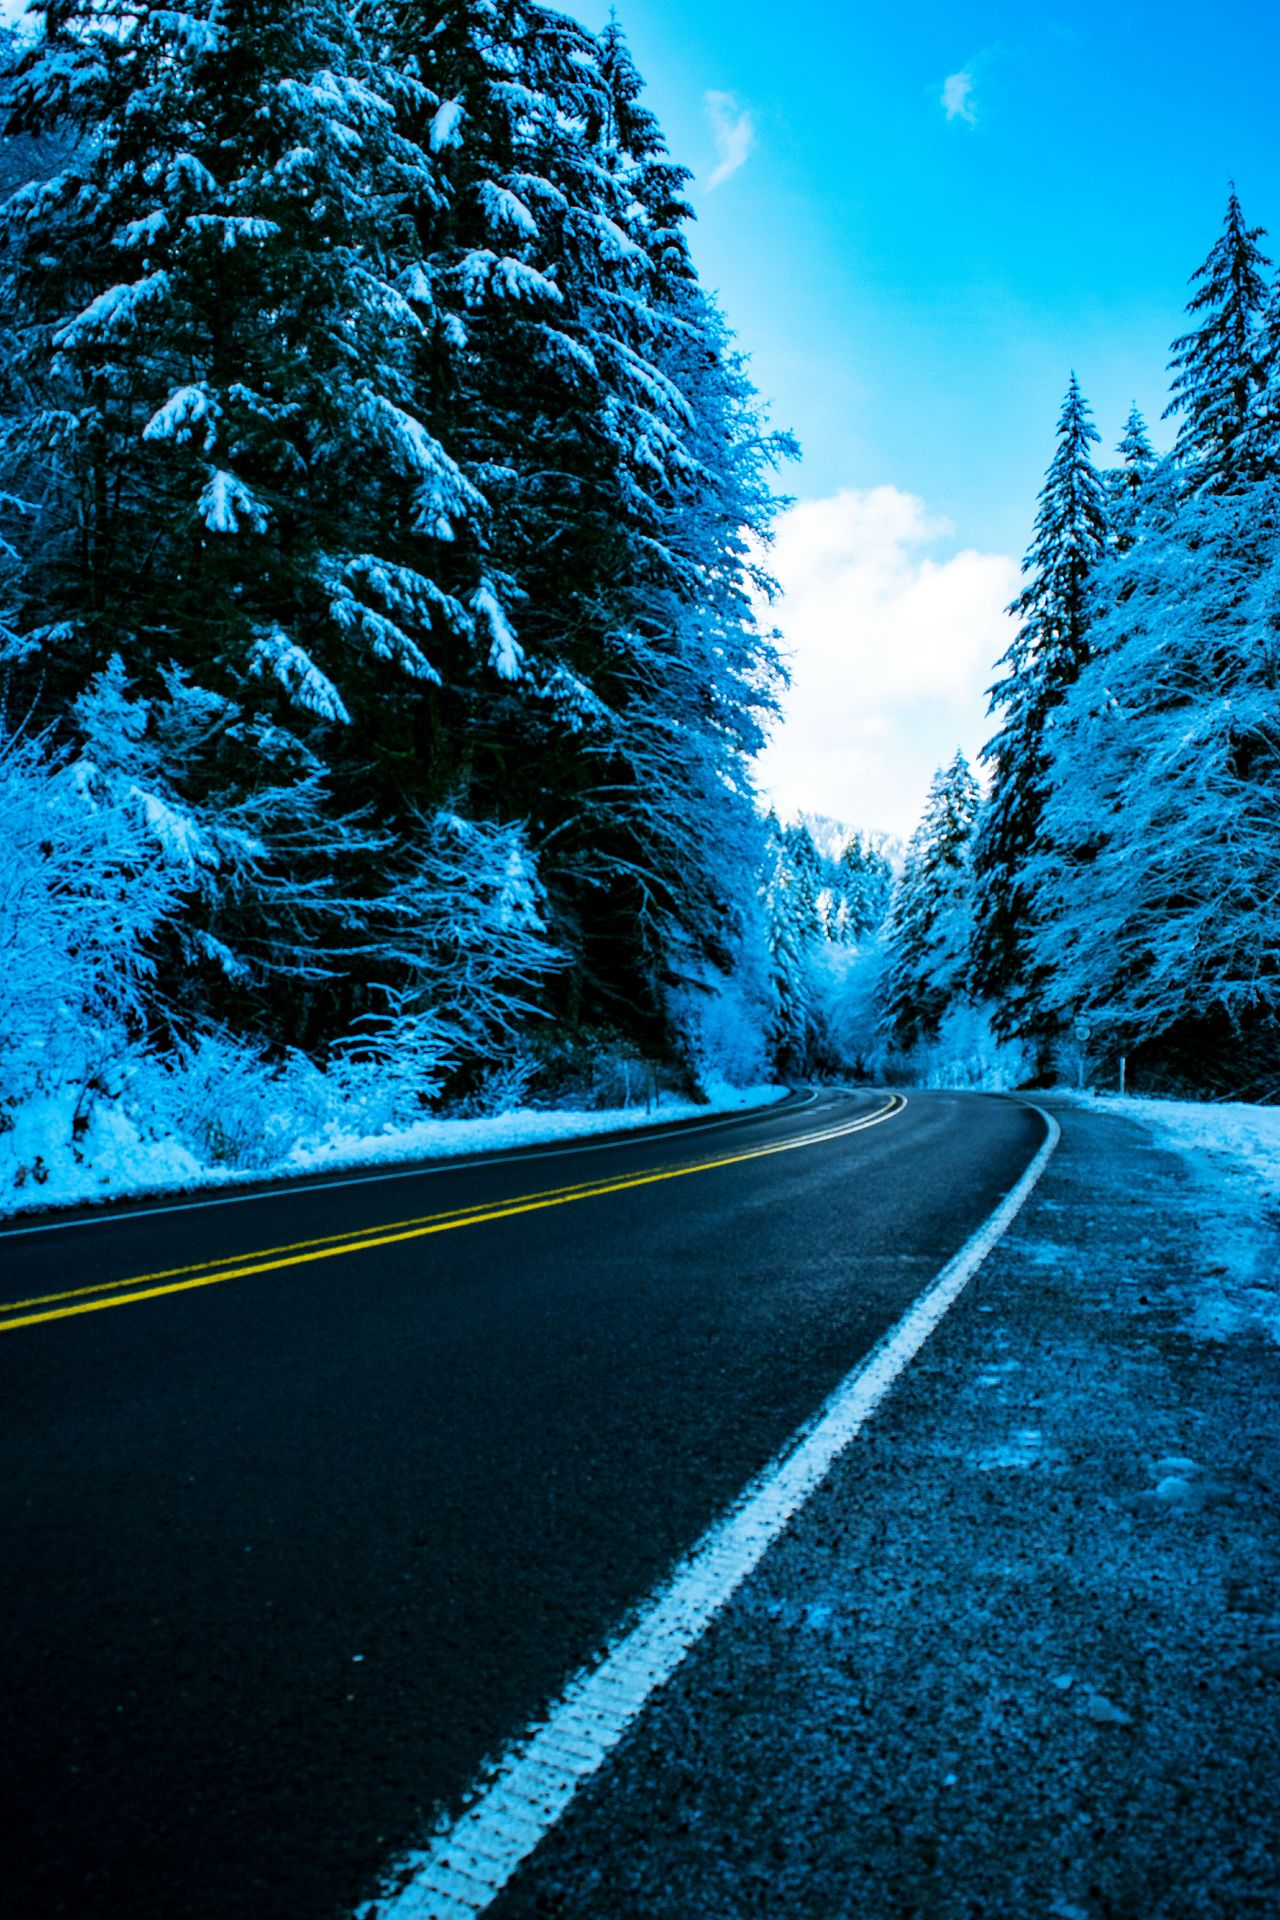 Morning commute Road Outdoors Highway Landscape Sky Snow Scenics Nature Landscape_photography From My Point Of View Oregon Oregonexplored Oregon Beauty Roadsidephotography Roadtrip Tillamook Forest